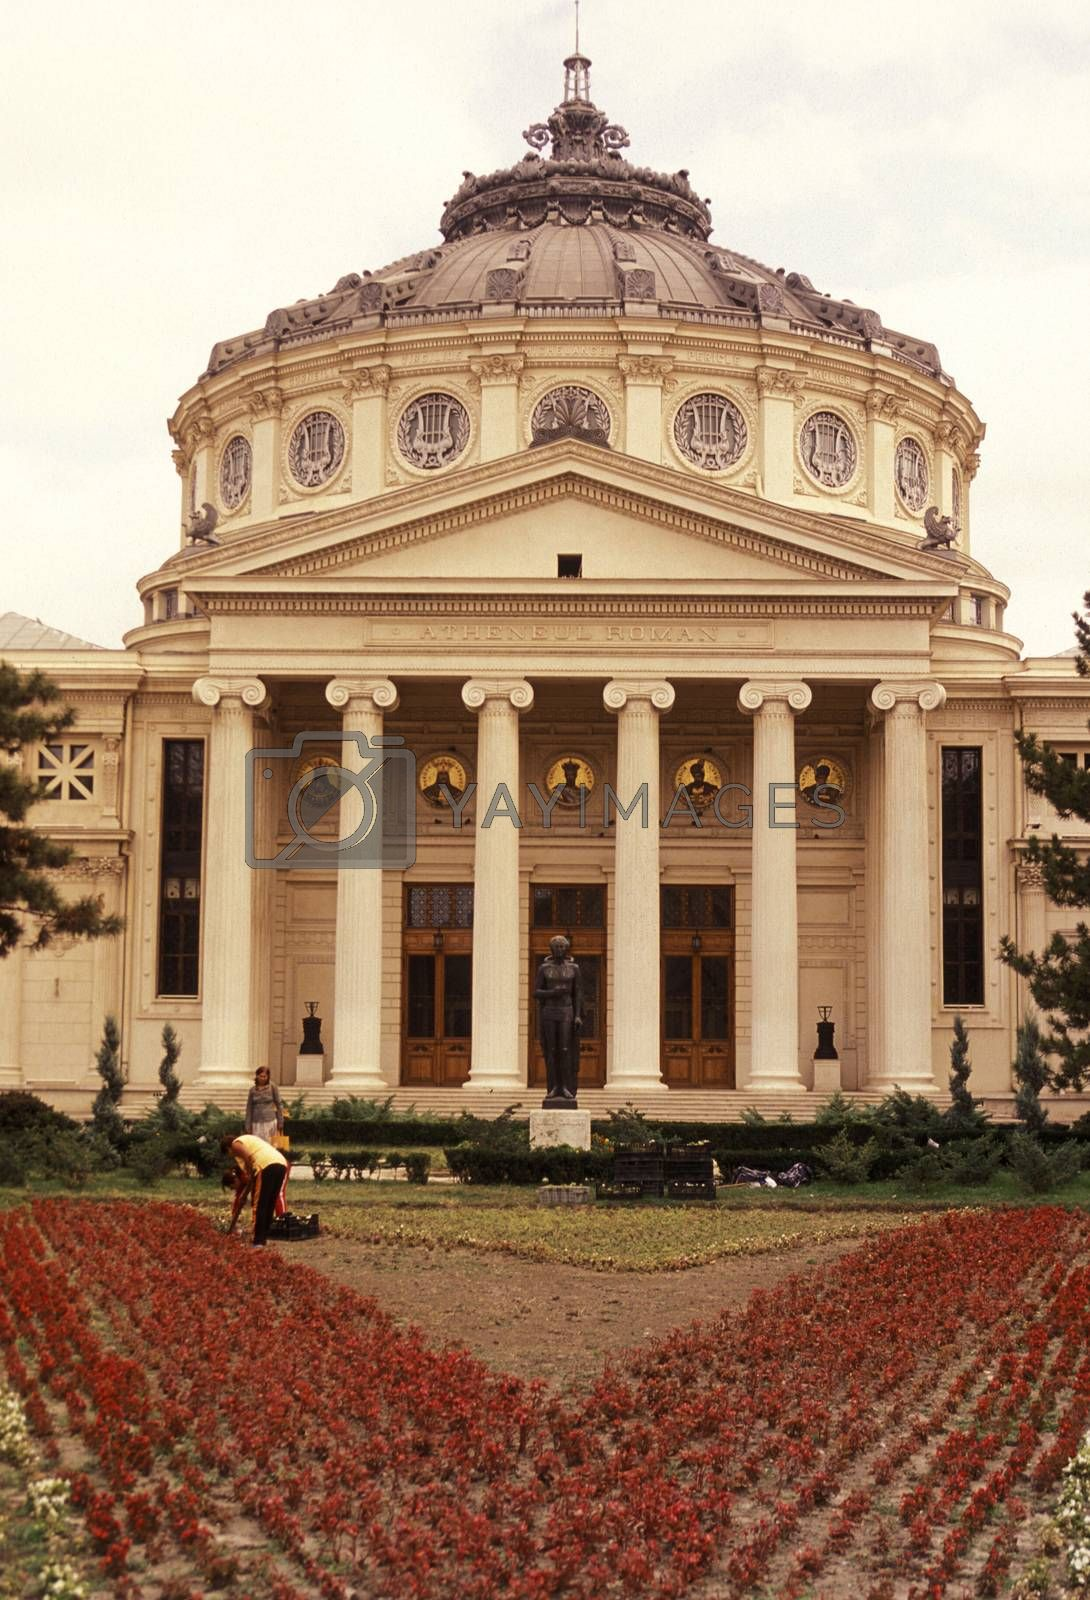 the Romanian Athenaeum in the city of Bucharest in Romania in east europe.